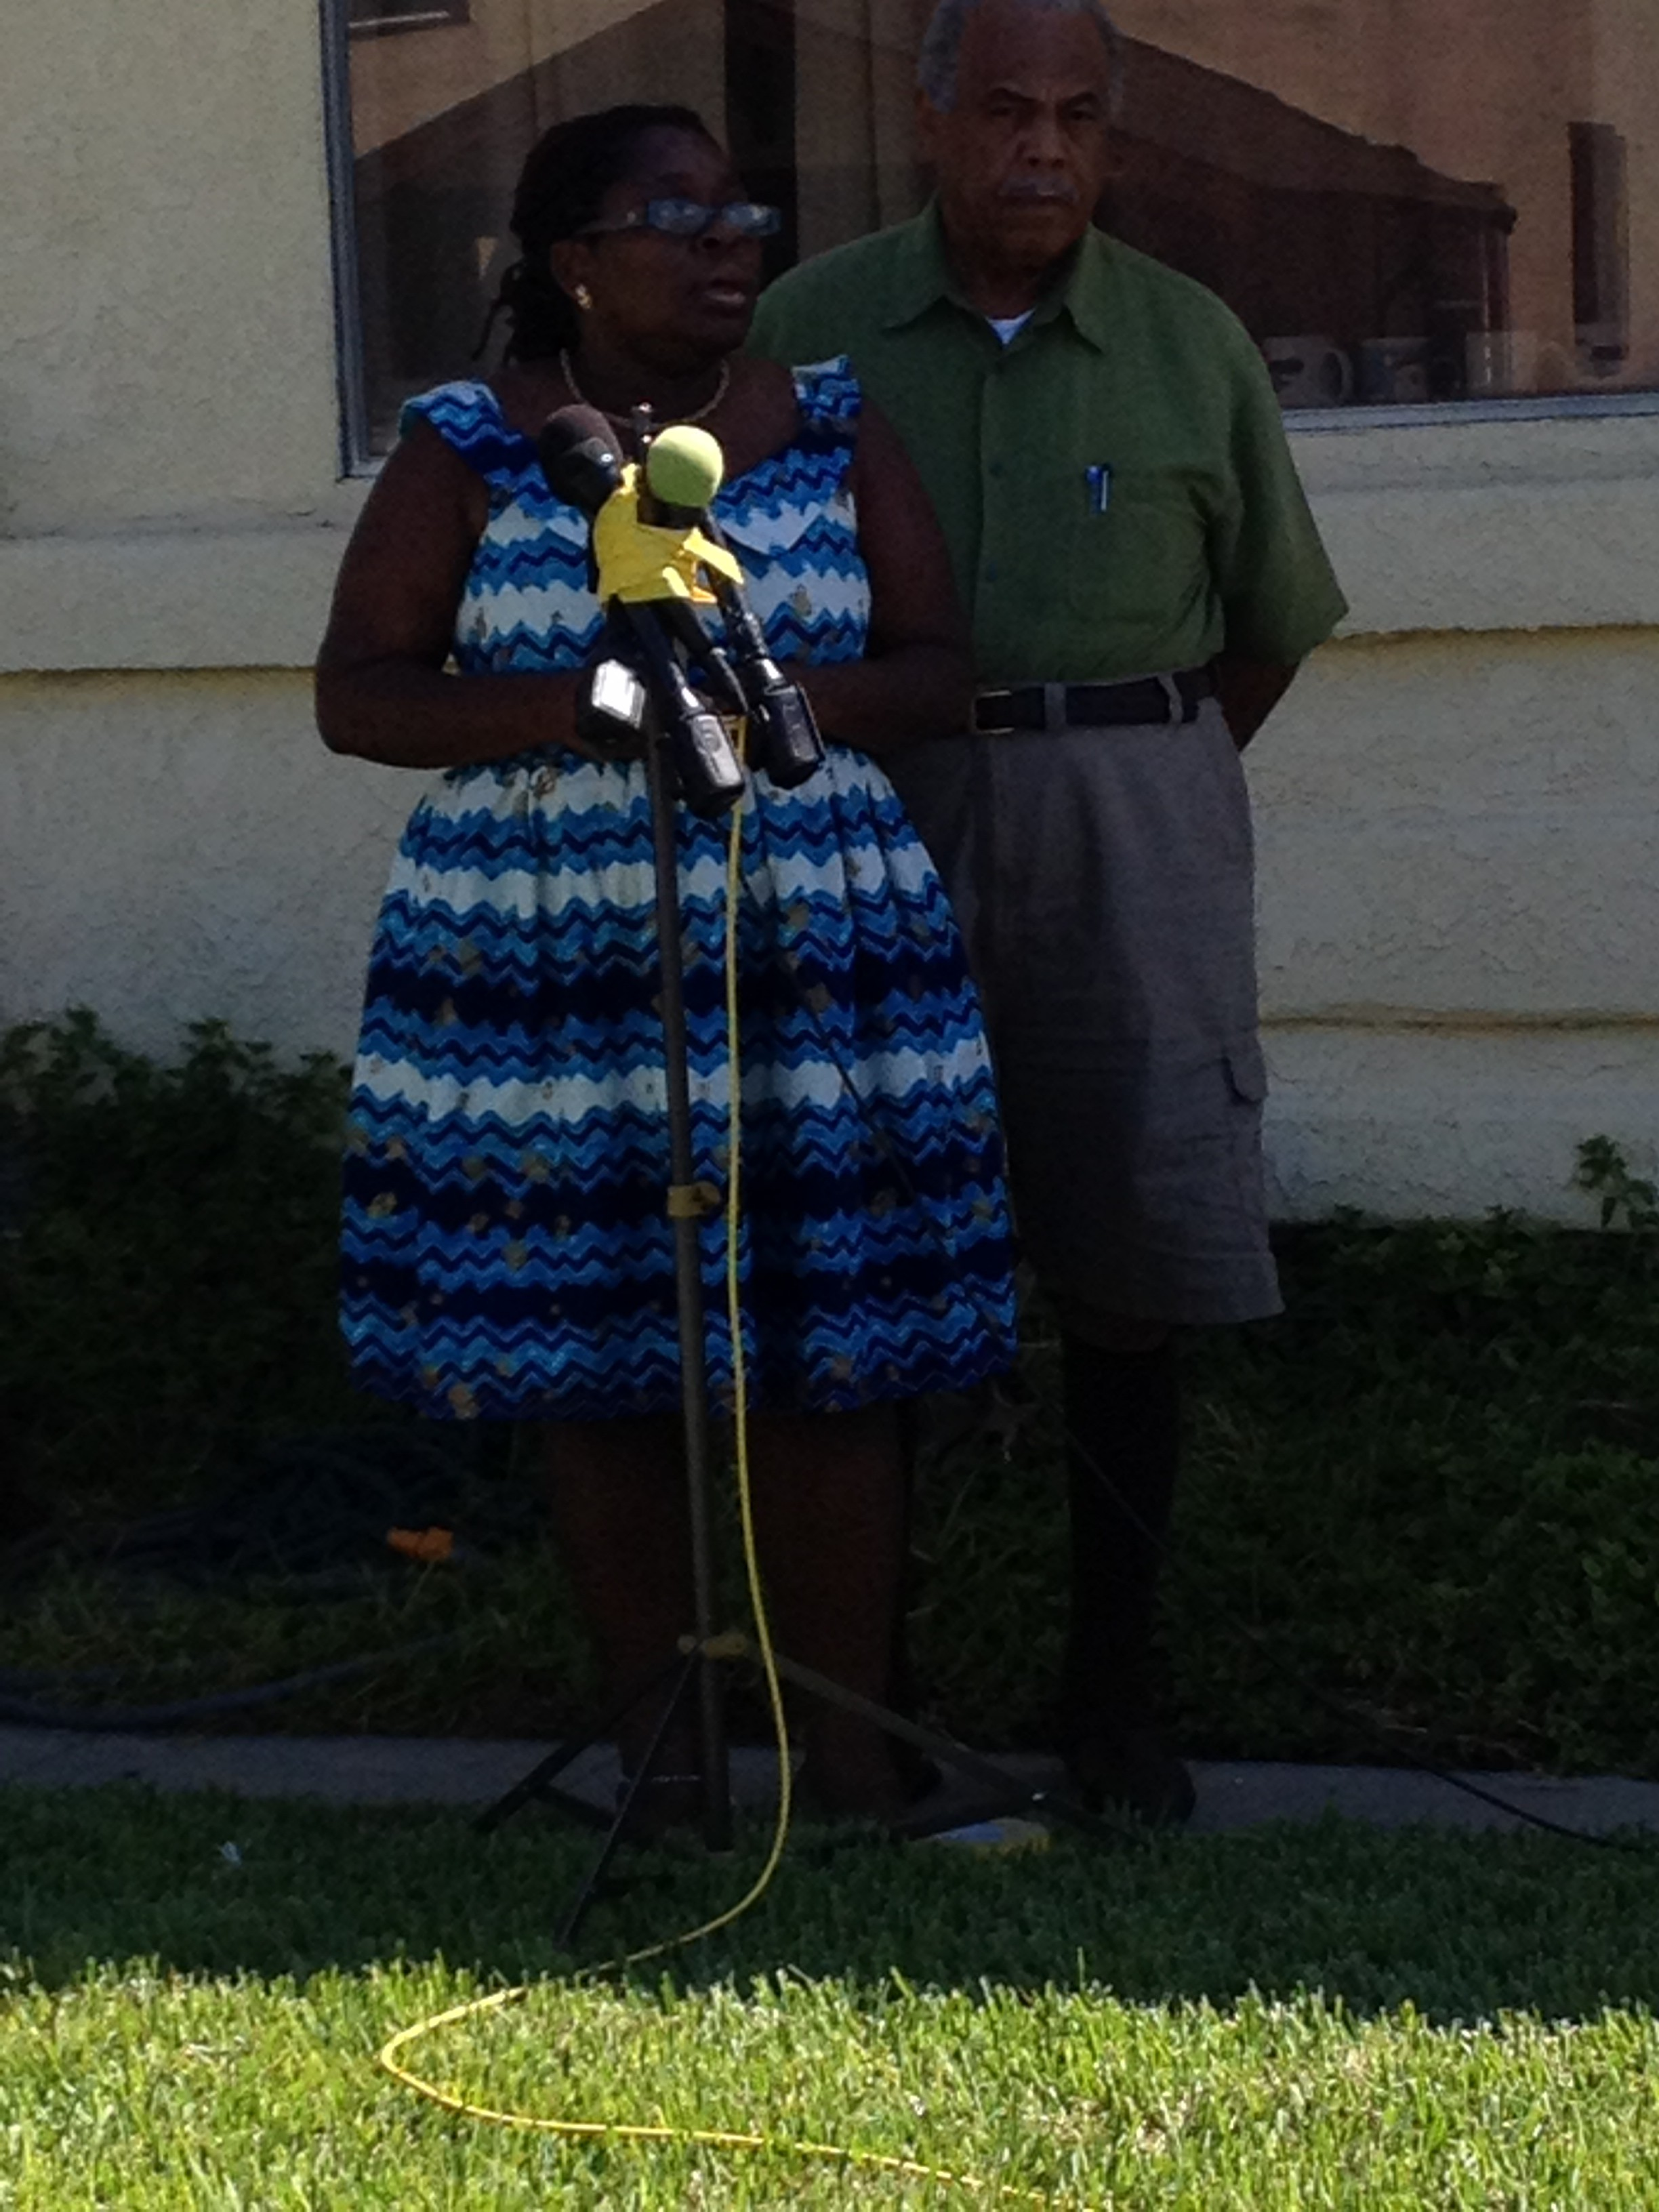 Attorney Nana Gyamfi stands with South LA homeowner Warren Johnson Fri. Aug. 29 at a press conference discussing the LAPD's trashing of his home.